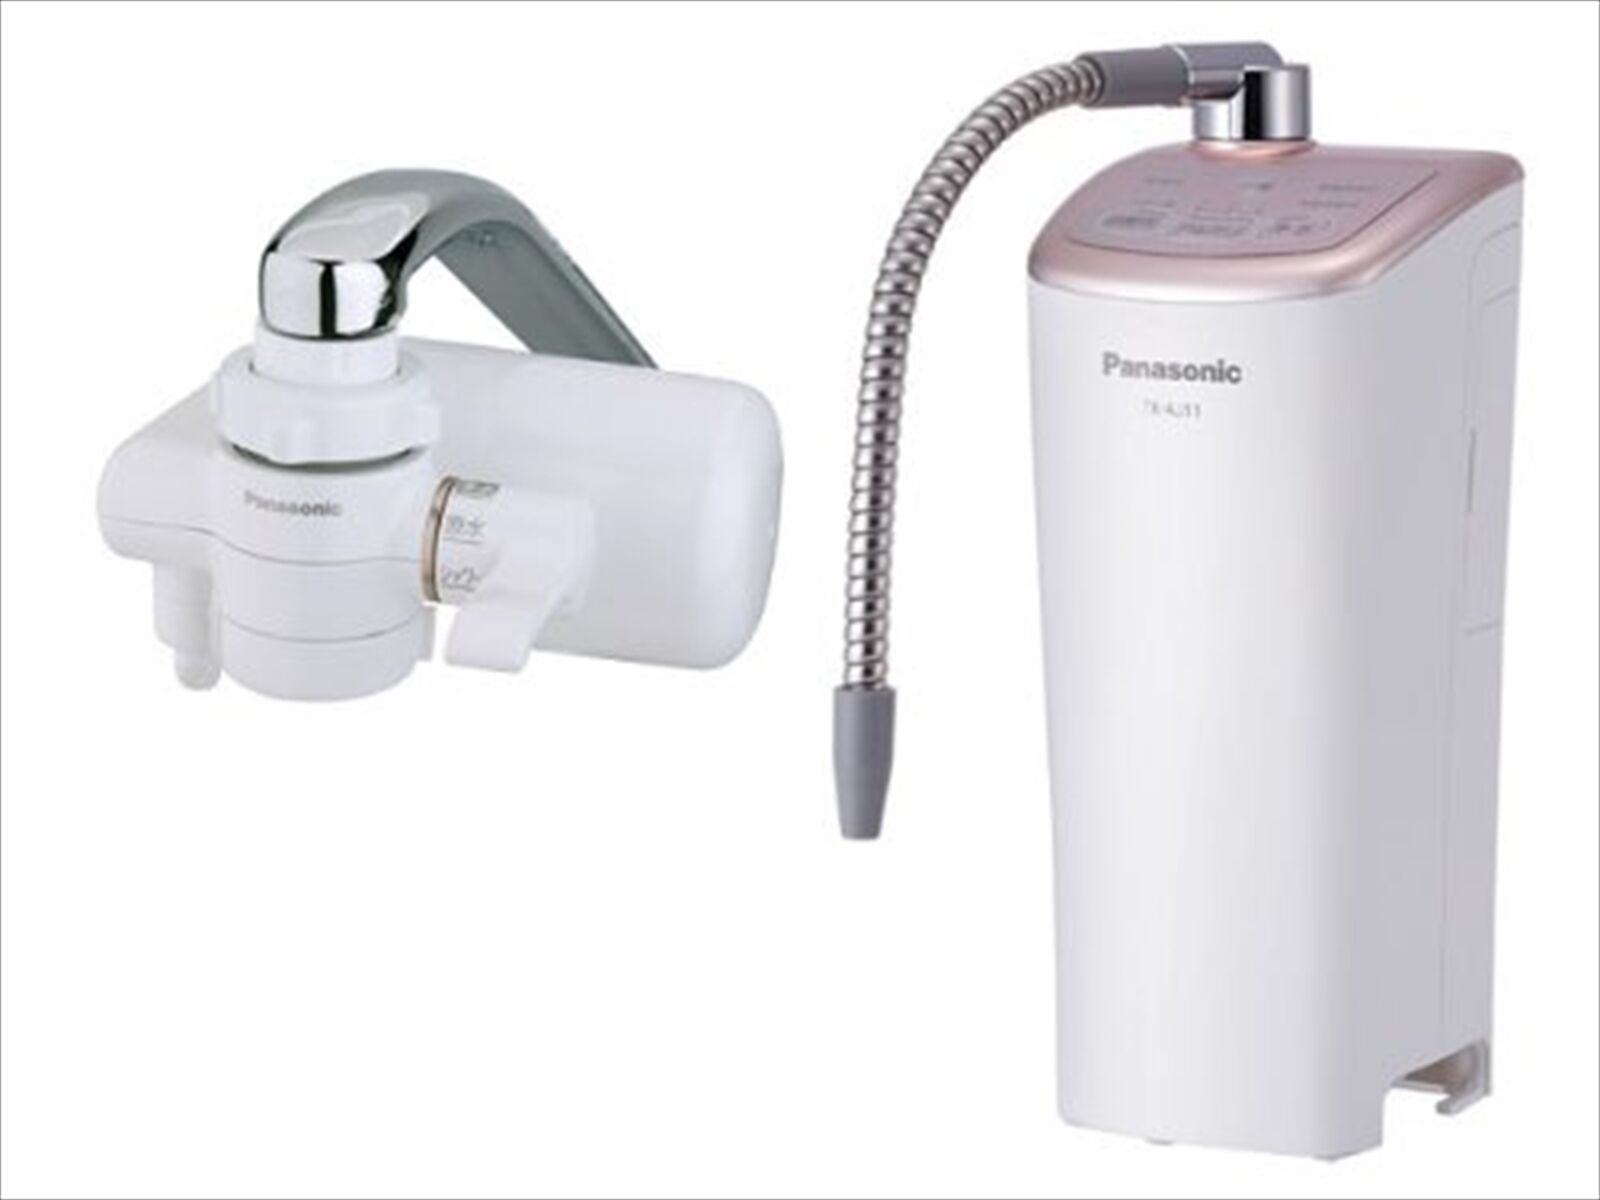 Panasonic Alkaline Ion Water Treatment rose or K-AJ11T-PN